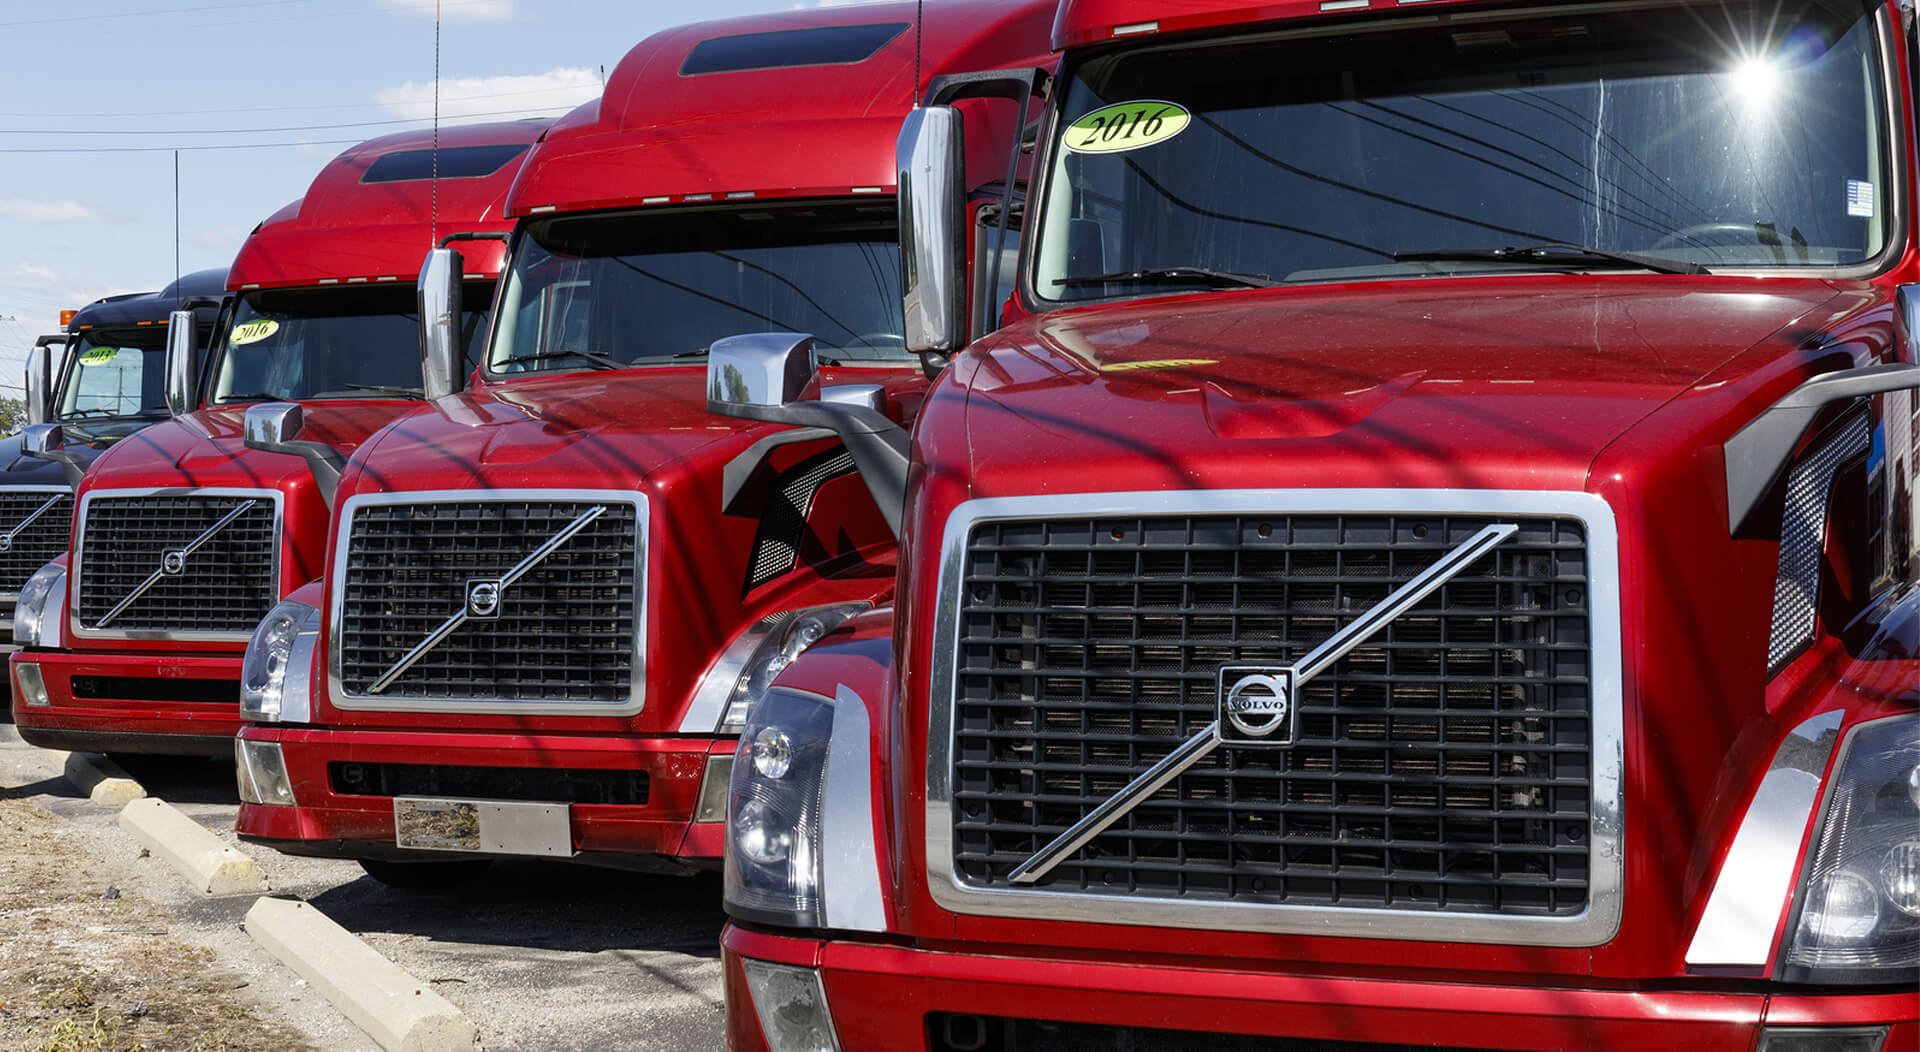 red Volvo trucks lined up for sale